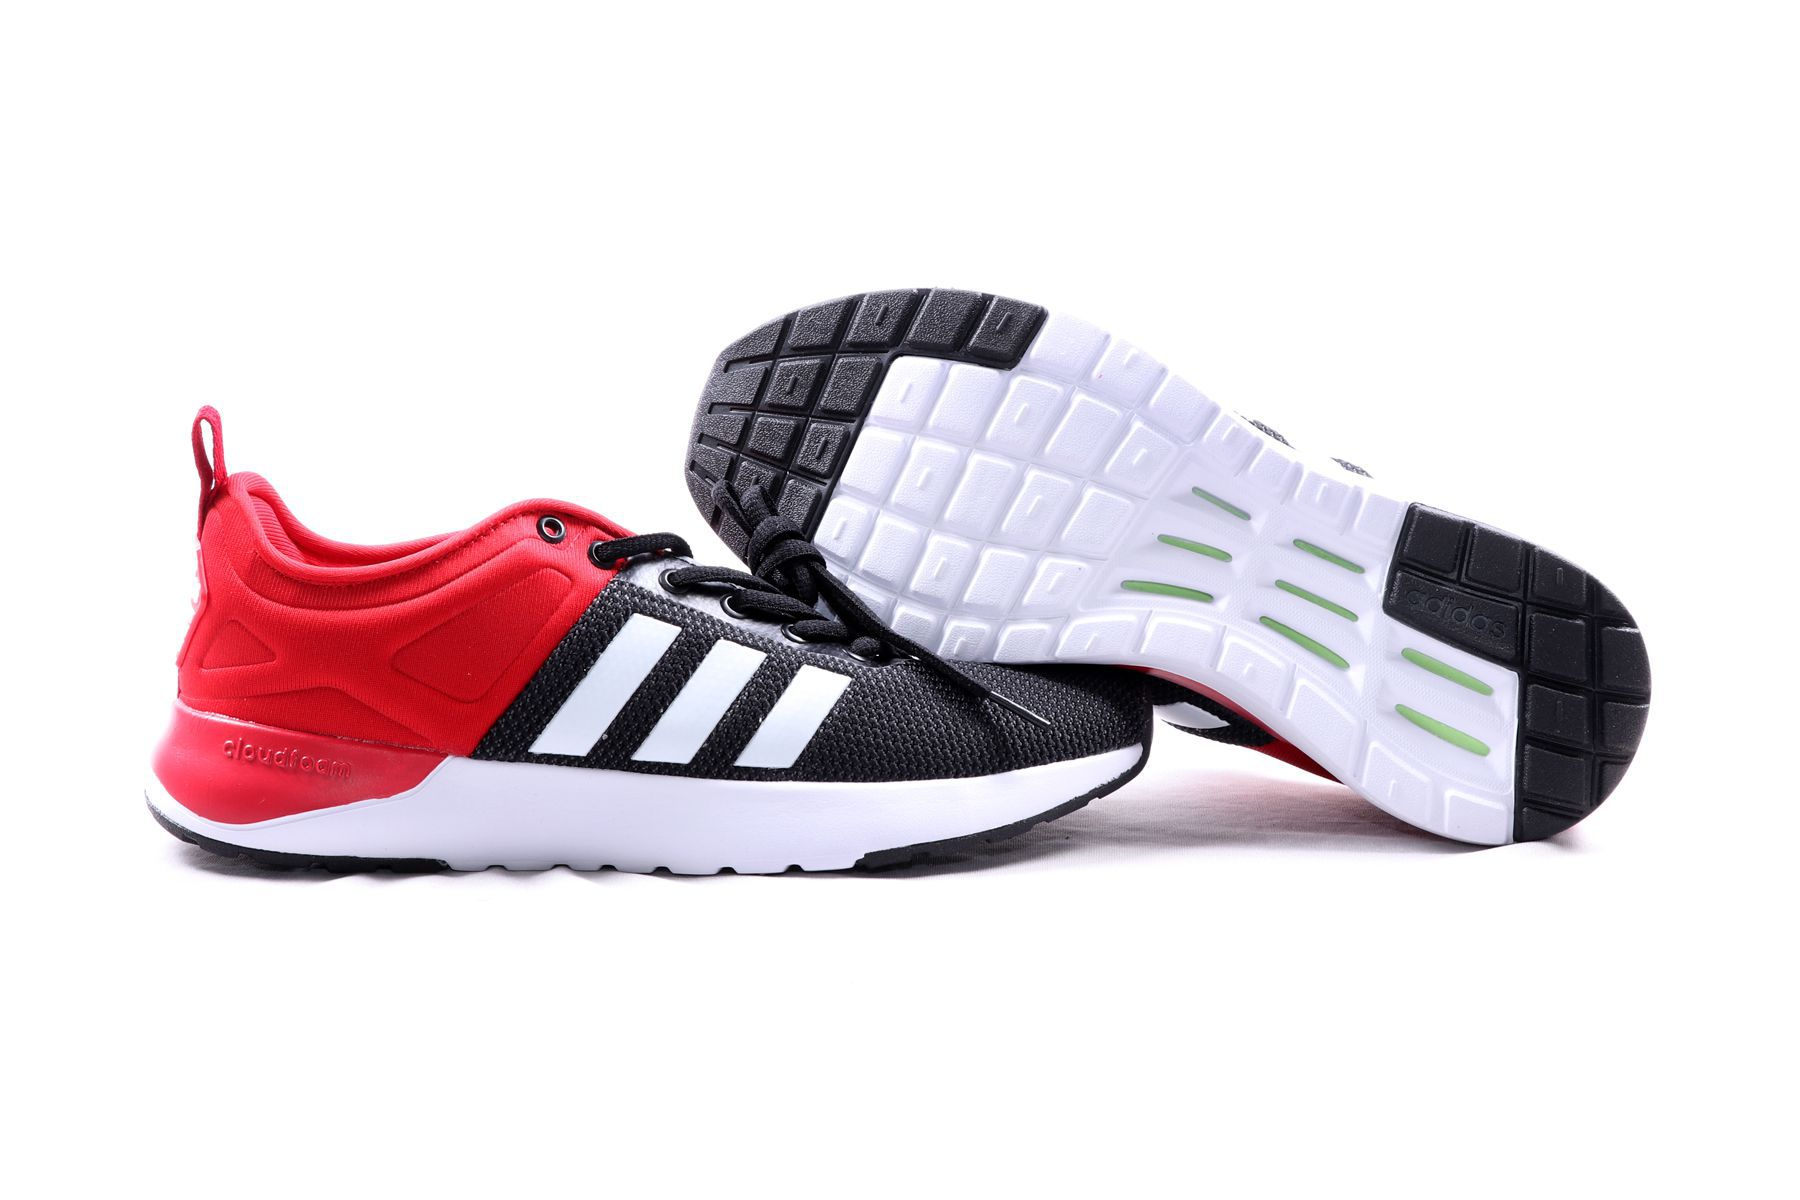 d9667dd3e41 Adidas CLOUDFOAM Red Running Shoes - Buy Adidas CLOUDFOAM Red ...